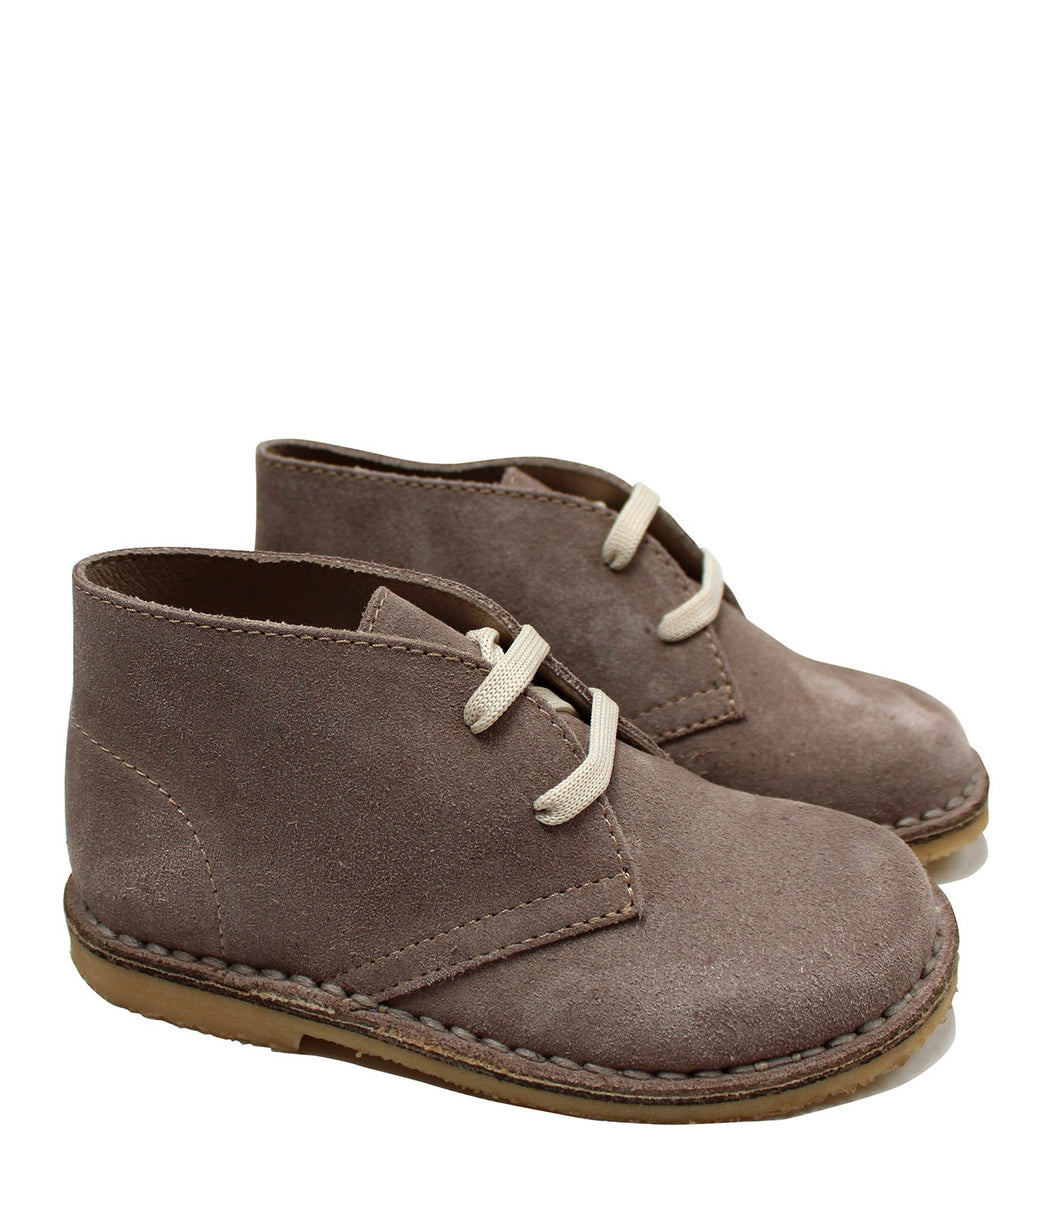 Natural desert shoes